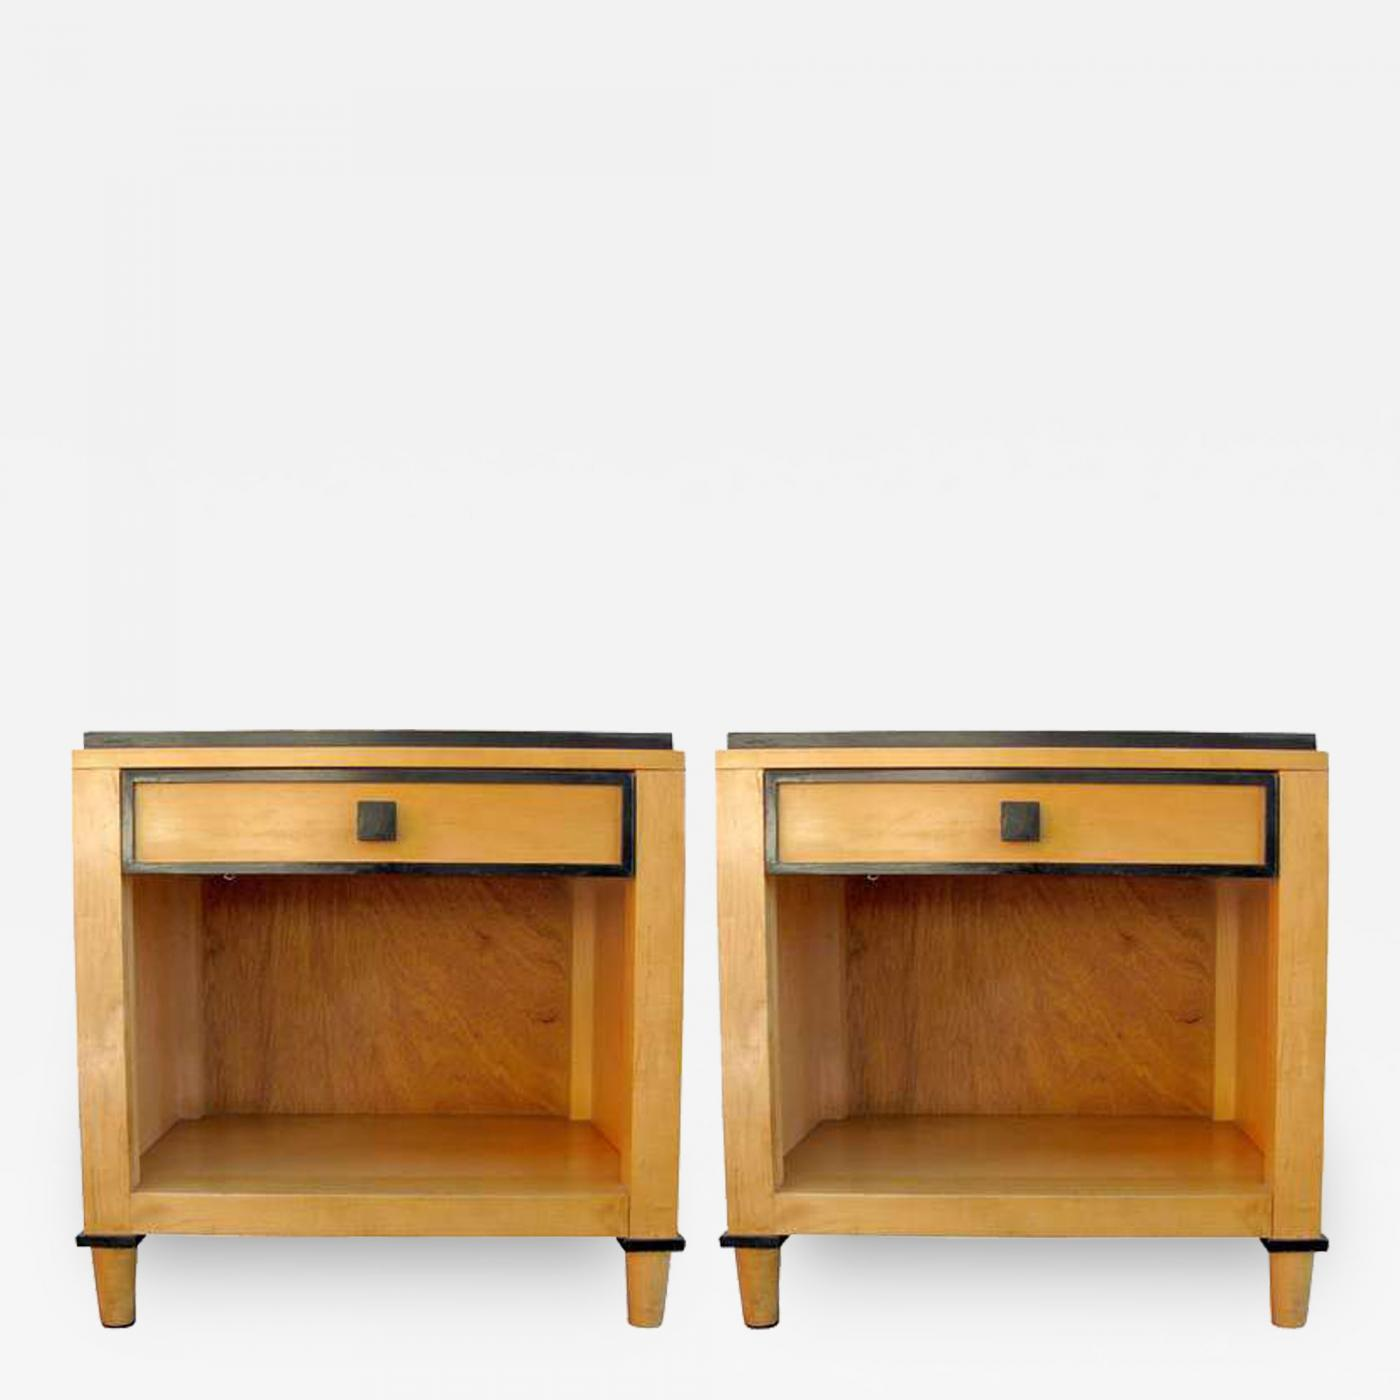 Listings / Furniture / Tables / Side Tables · Kimball Hospitality Furniture  Inc Pair Of Two Tone Wooden ...